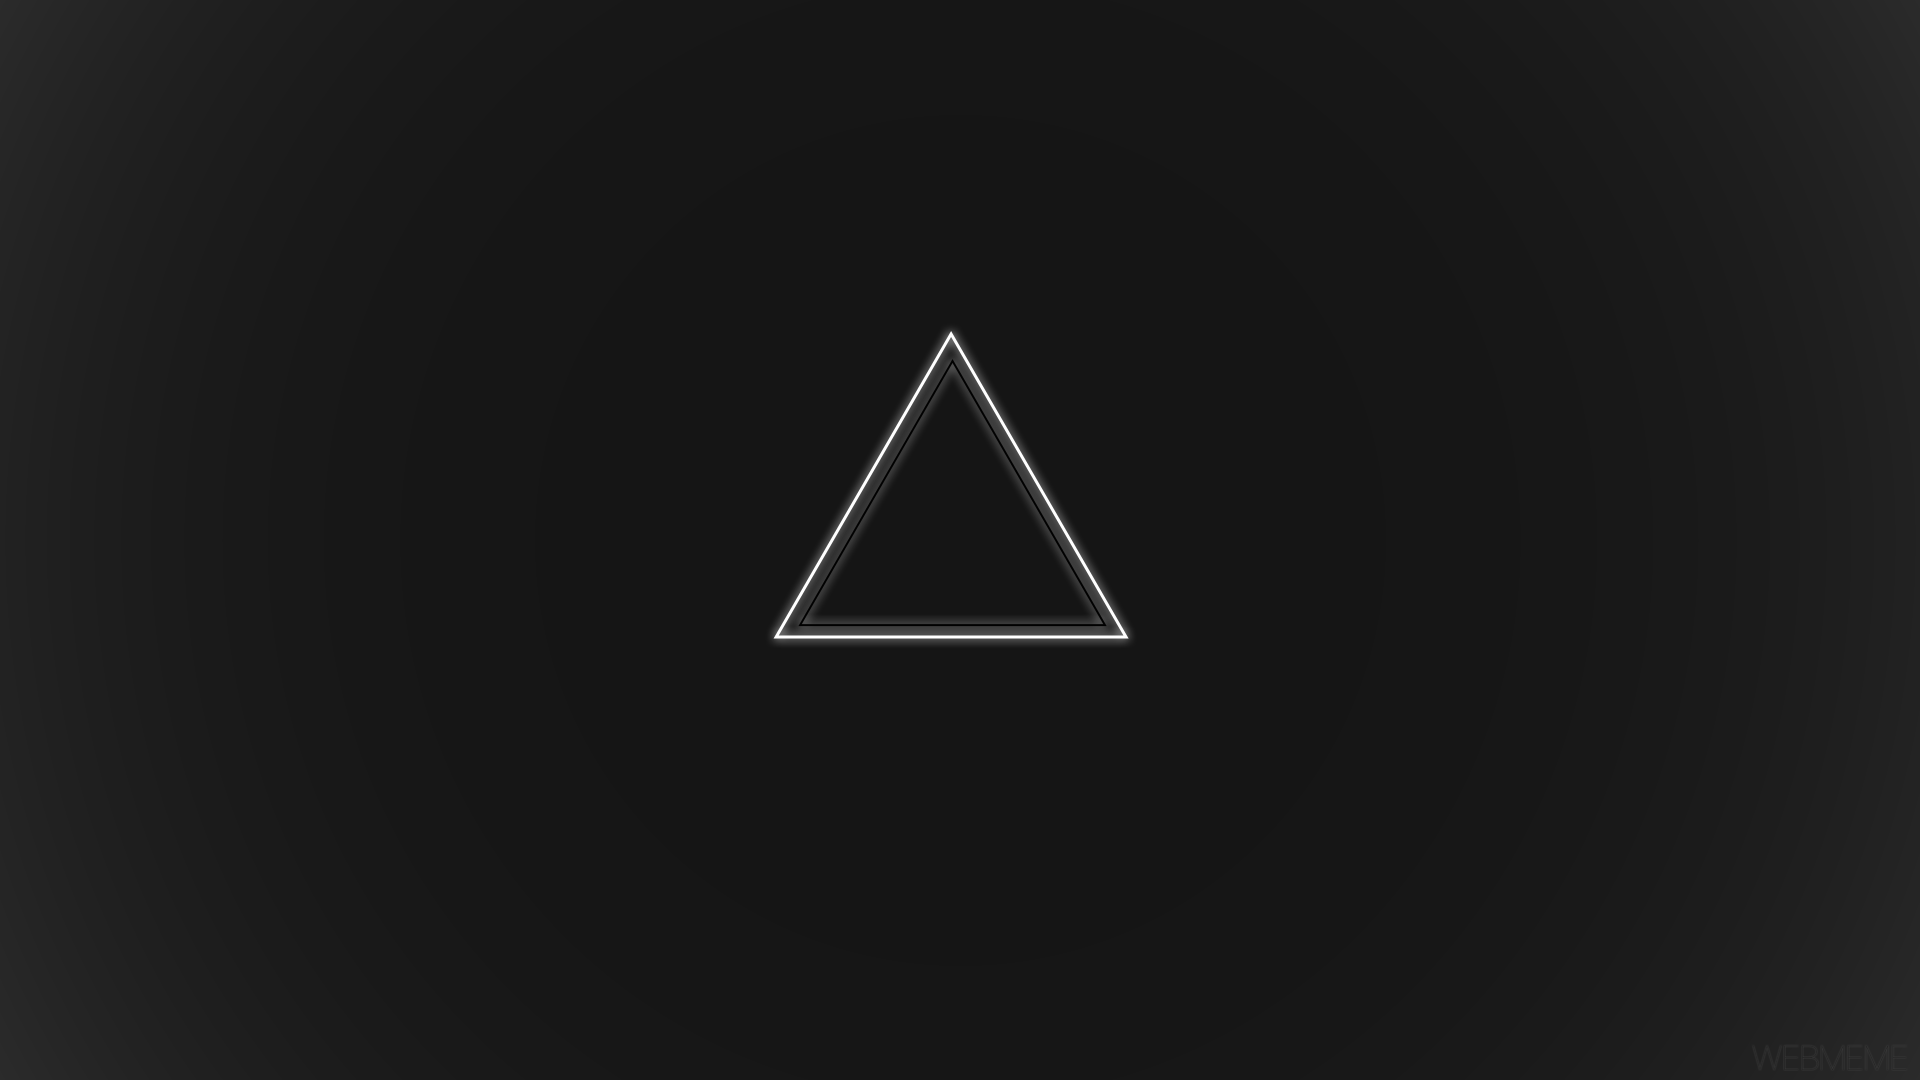 General-1920x1080-minimalism-gray-geometry-black-white-wallpaper-wp3805846